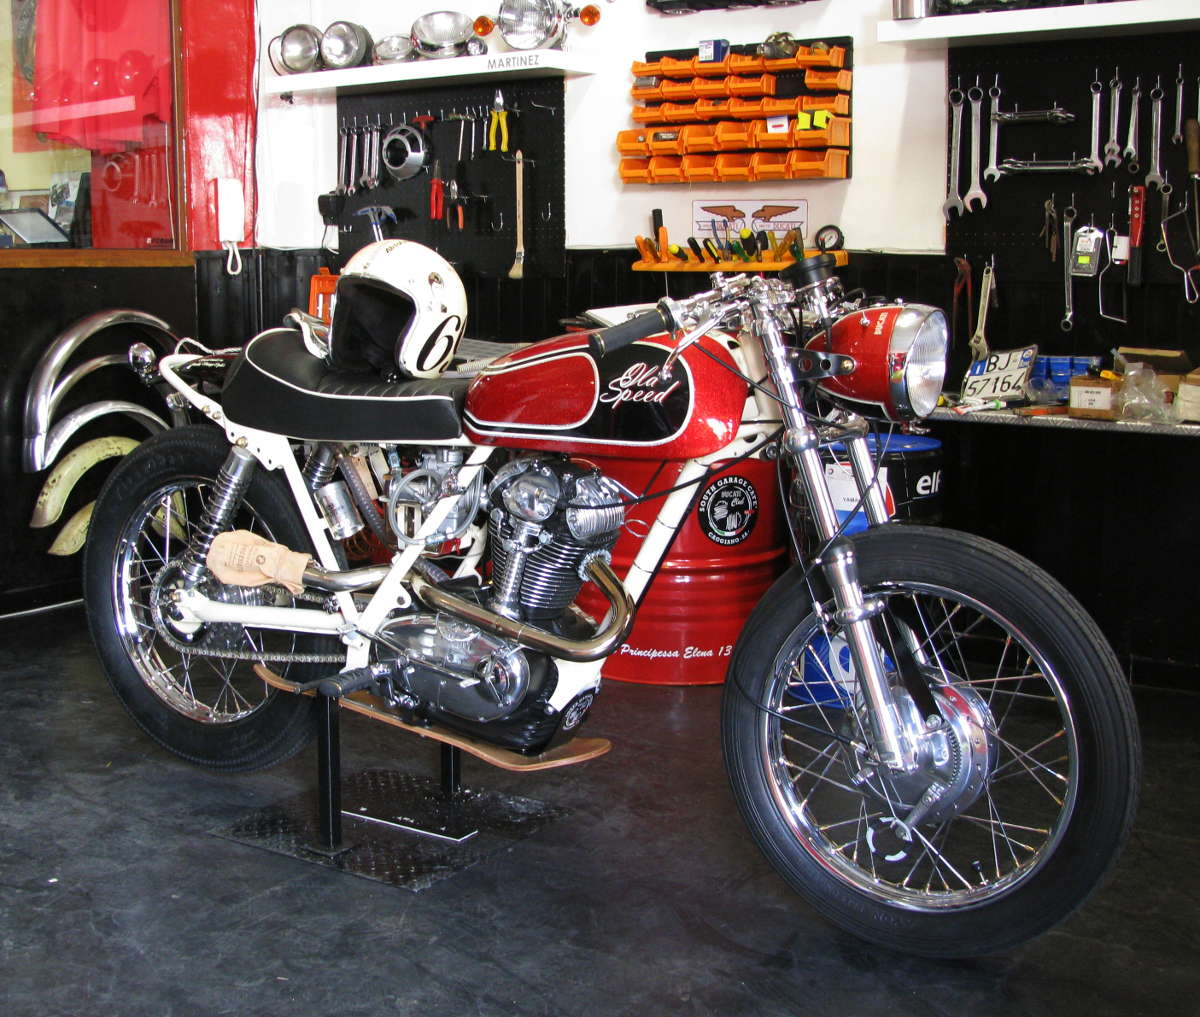 Ducati 749 Cafe Racer custom ~ Return of the Cafe Racers